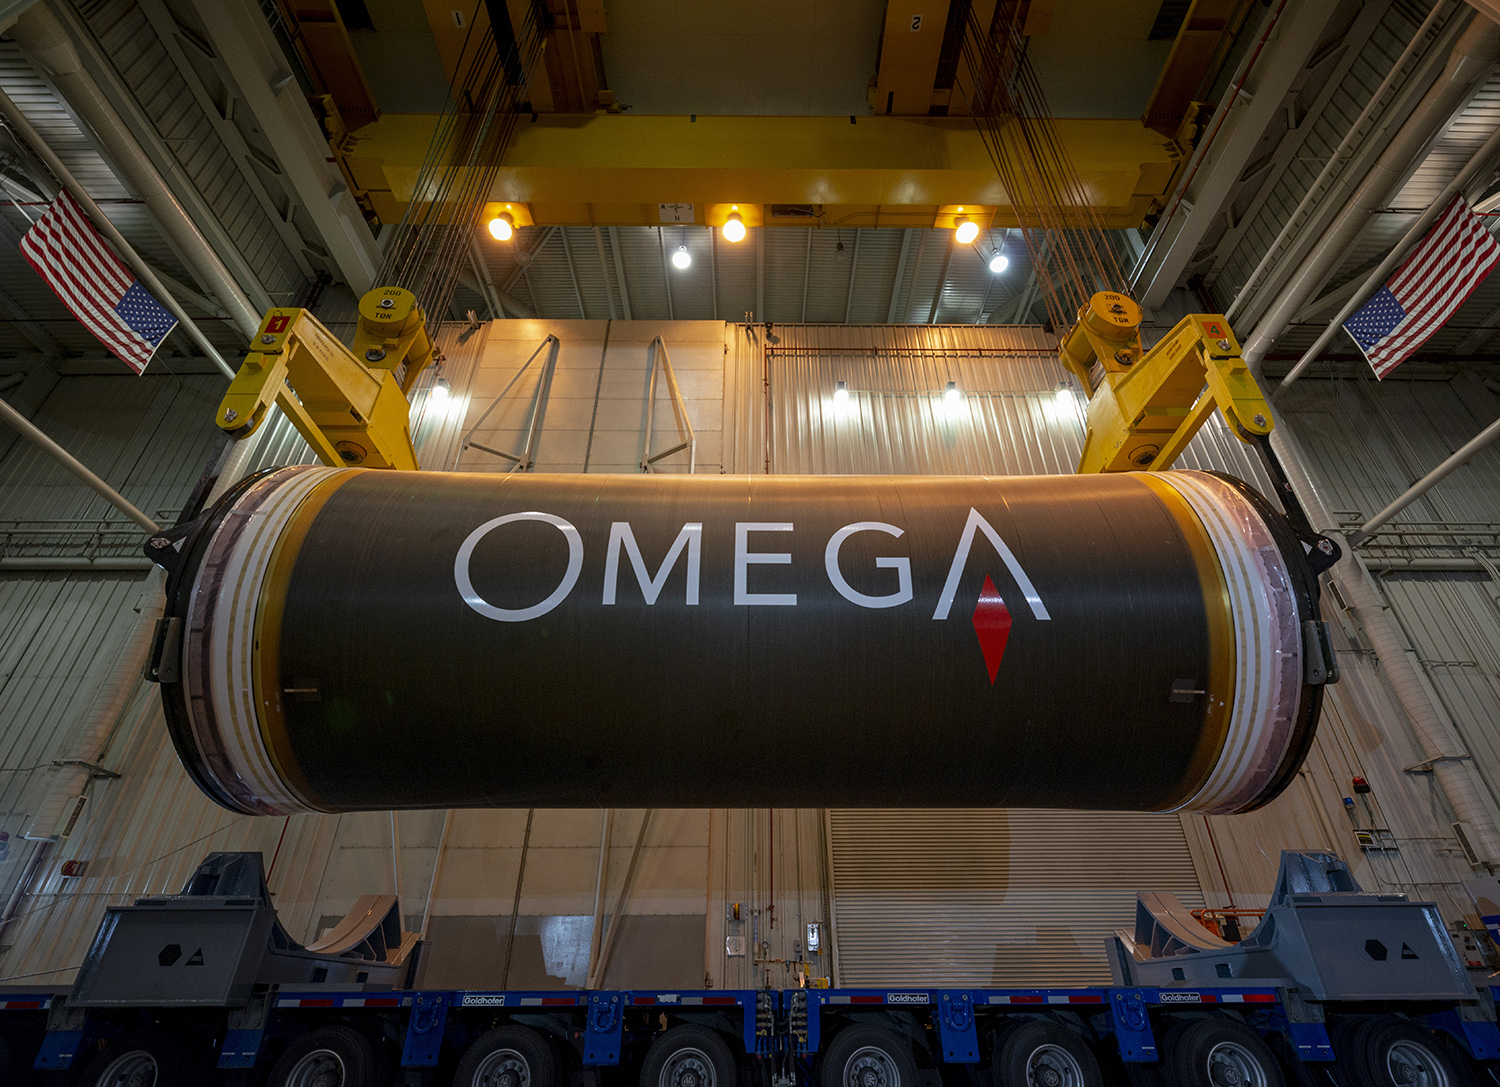 Inert OmegA segments are loaded and shipped to Kennedy Space Center for stacking and integration practice. (May 2020)